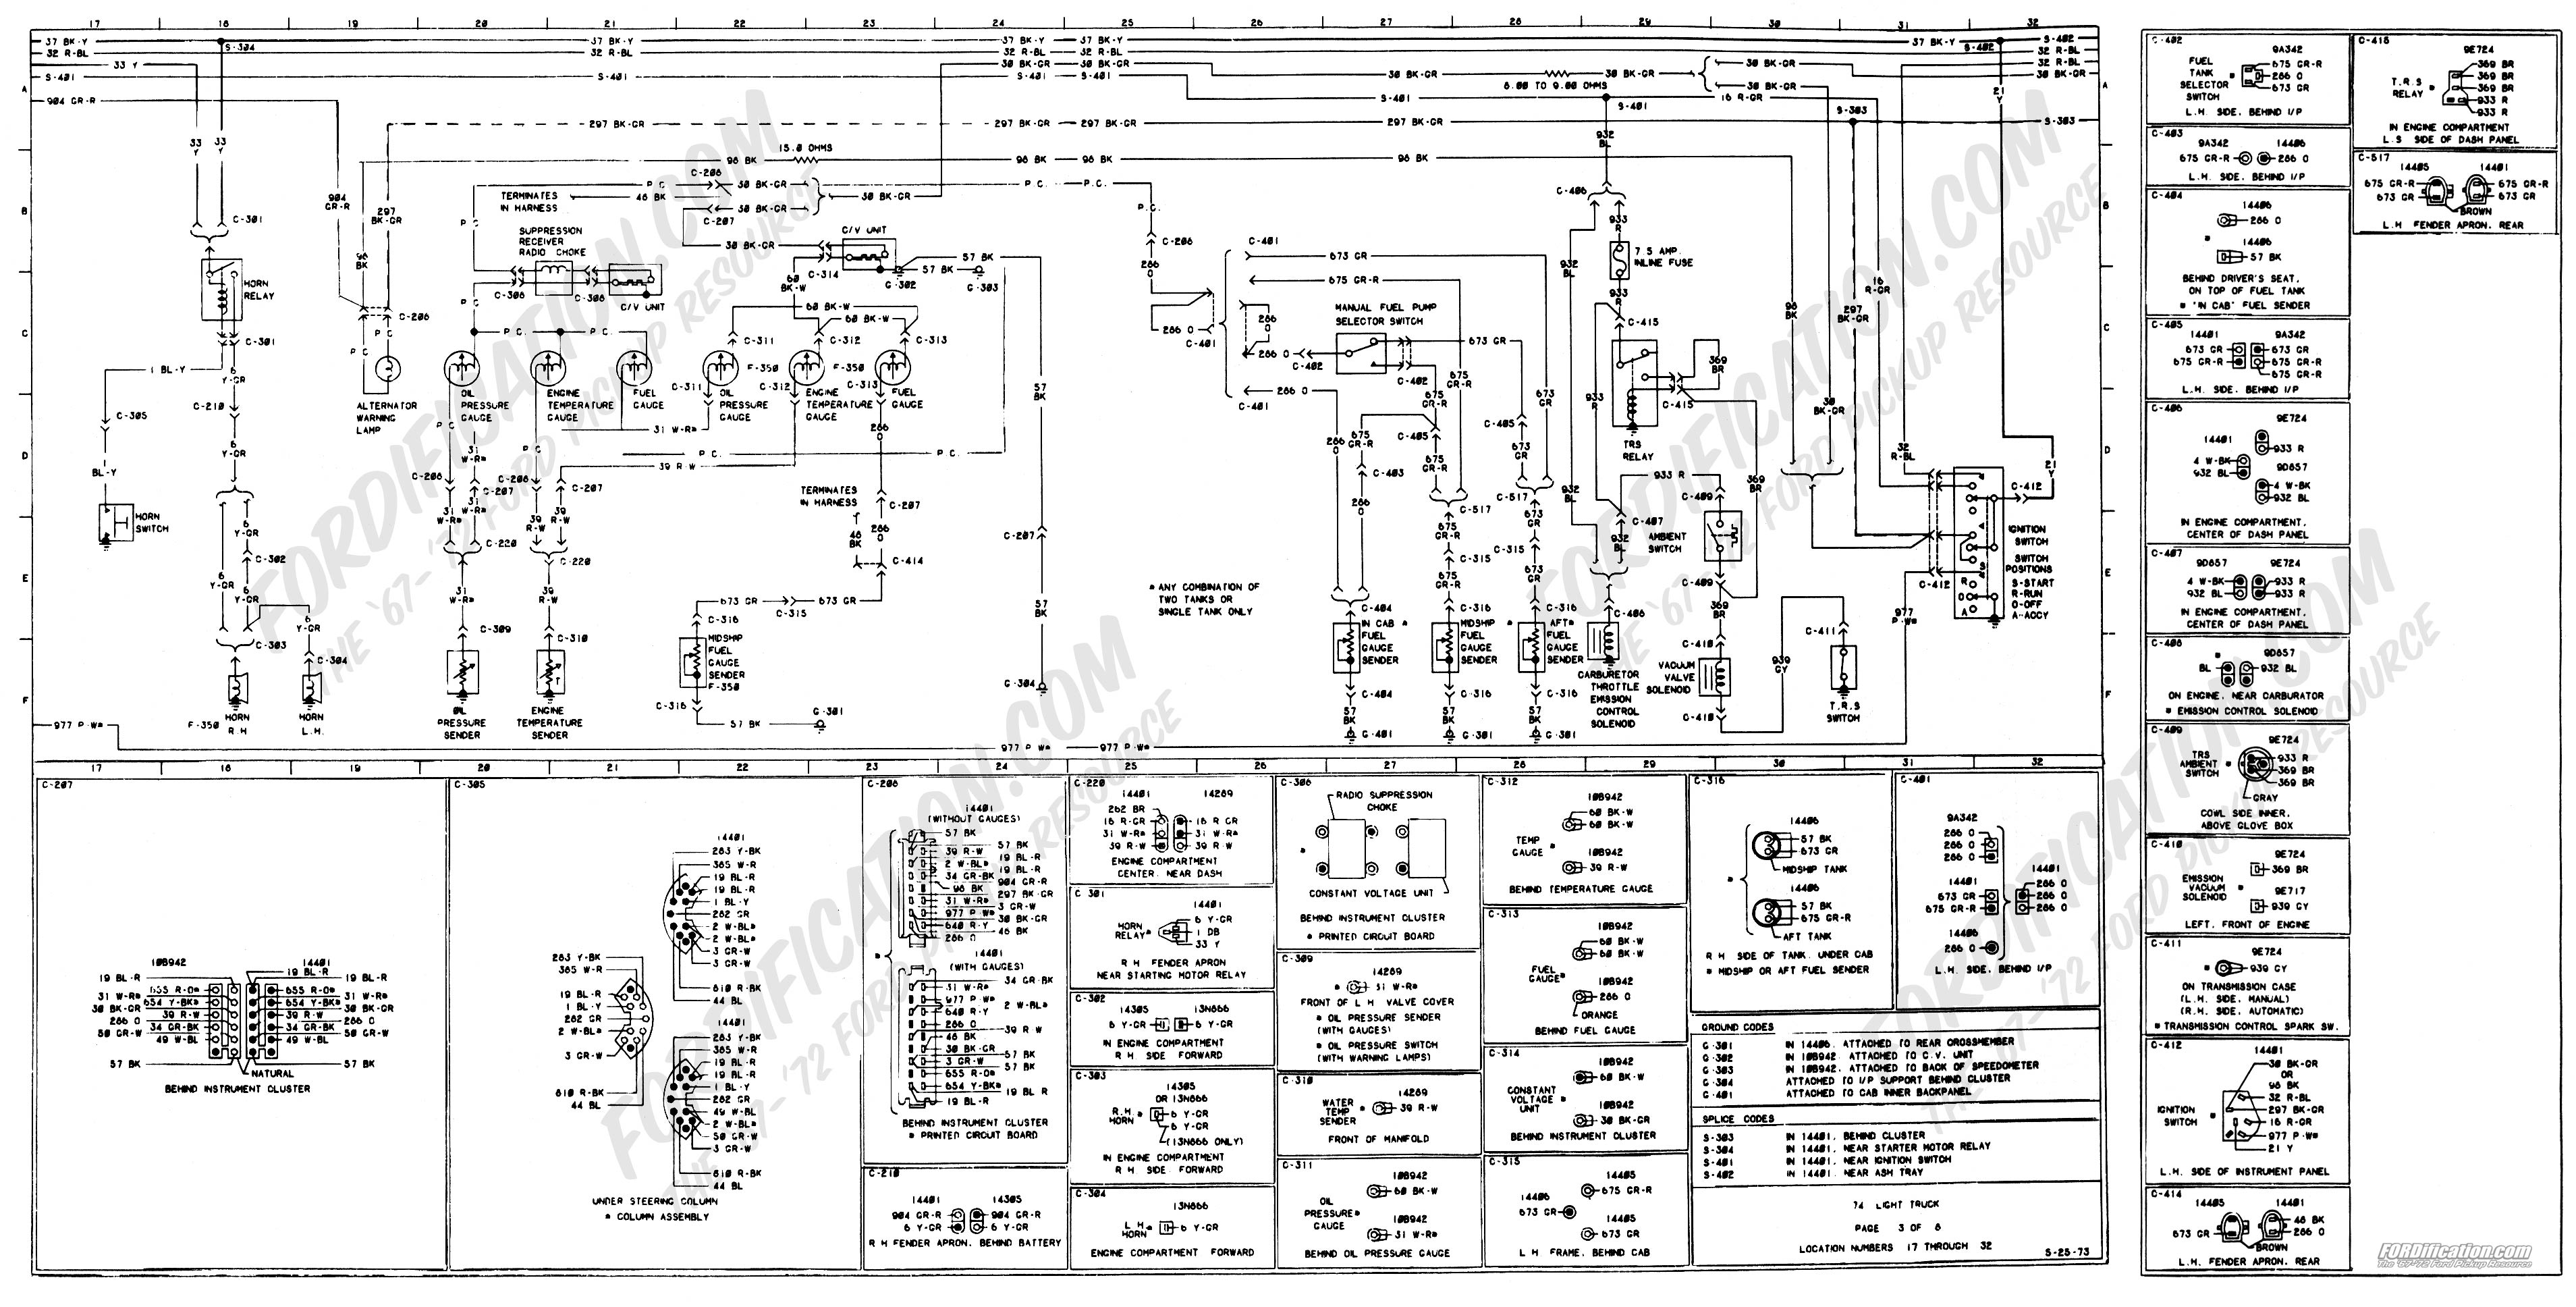 wiring_74master_3of8 1973 1979 ford truck wiring diagrams & schematics fordification net ford ignition wiring diagram at webbmarketing.co